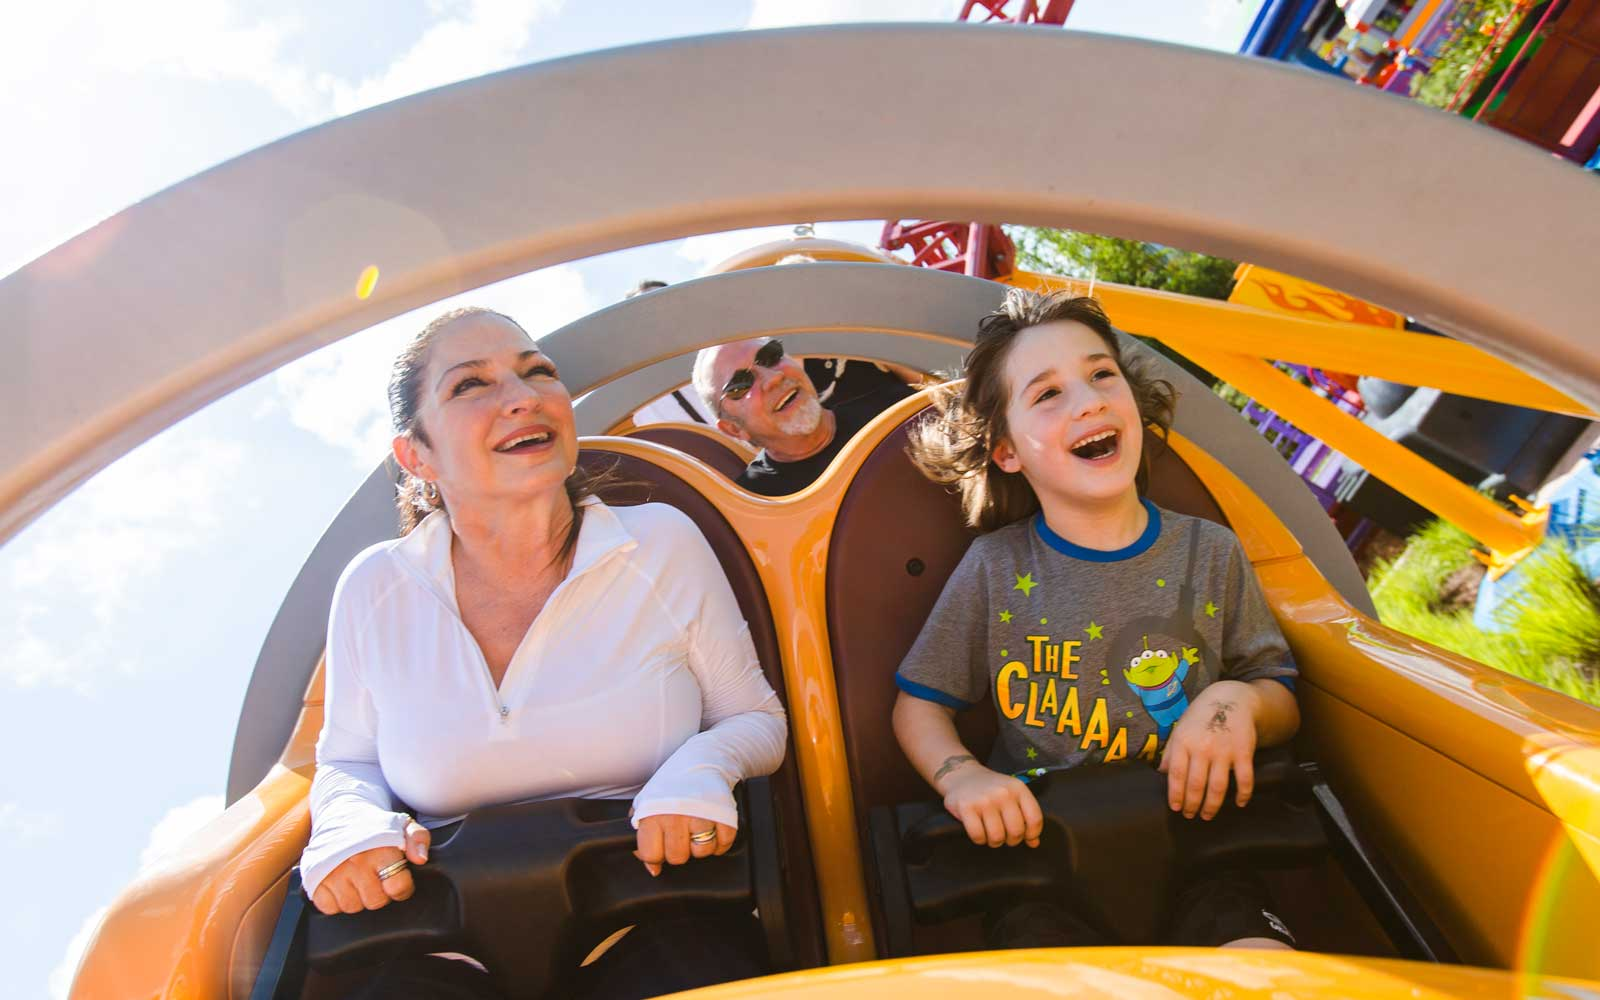 Gloria Estefan Celebrated Her Grandson's 6th Birthday at Toy Story Land